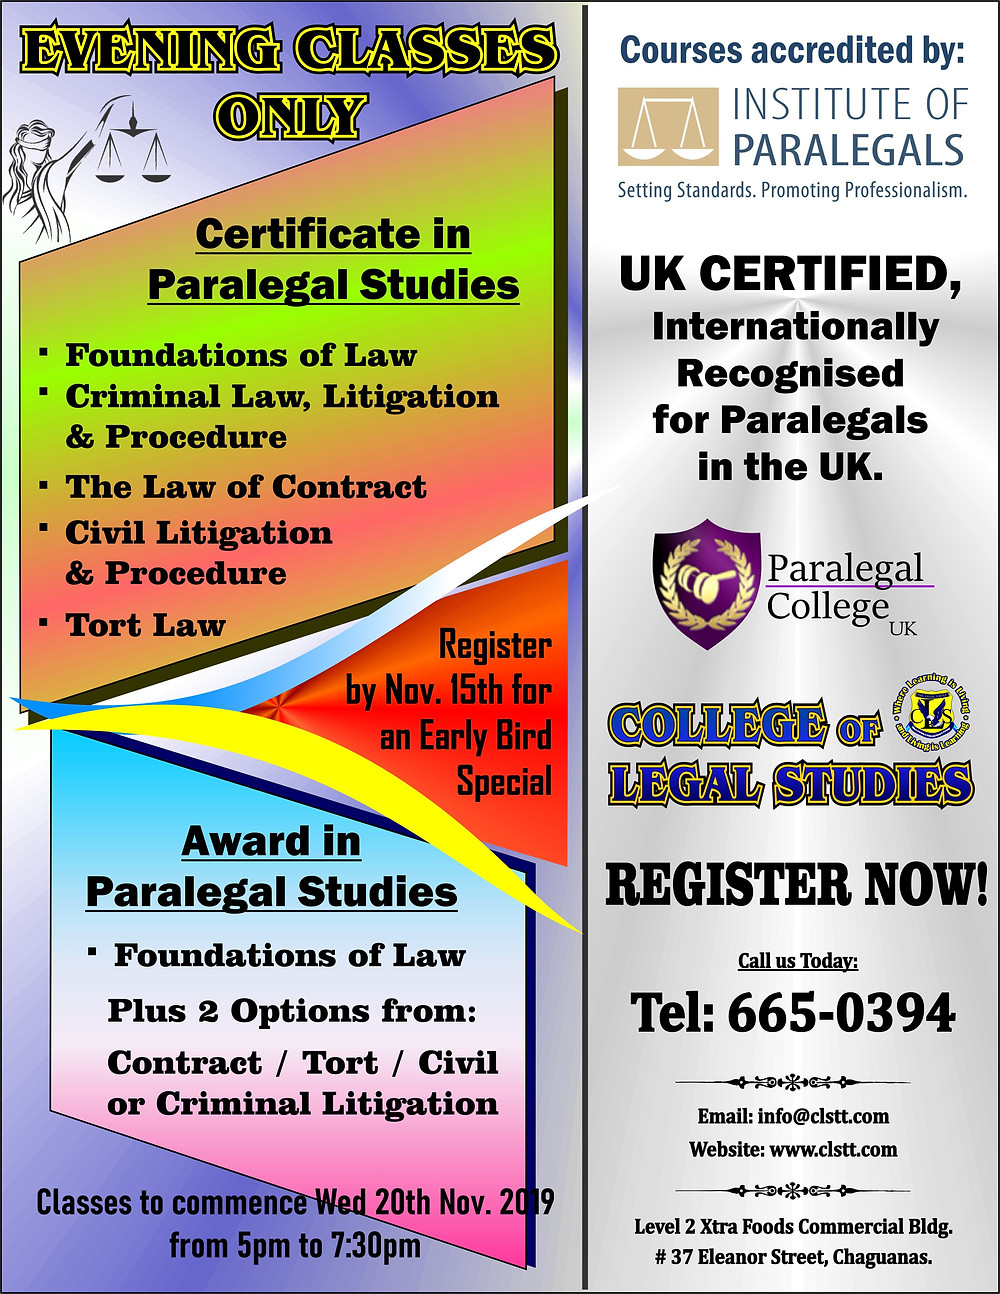 Register Now for our Paralegal Studies course. Evening Classes only for the upcoming cycle. Take advantage of our early bird special - register before November 15th 2019 and receive $750.00 off the local fees. Call us on 665-0394 or Visit us for more information.